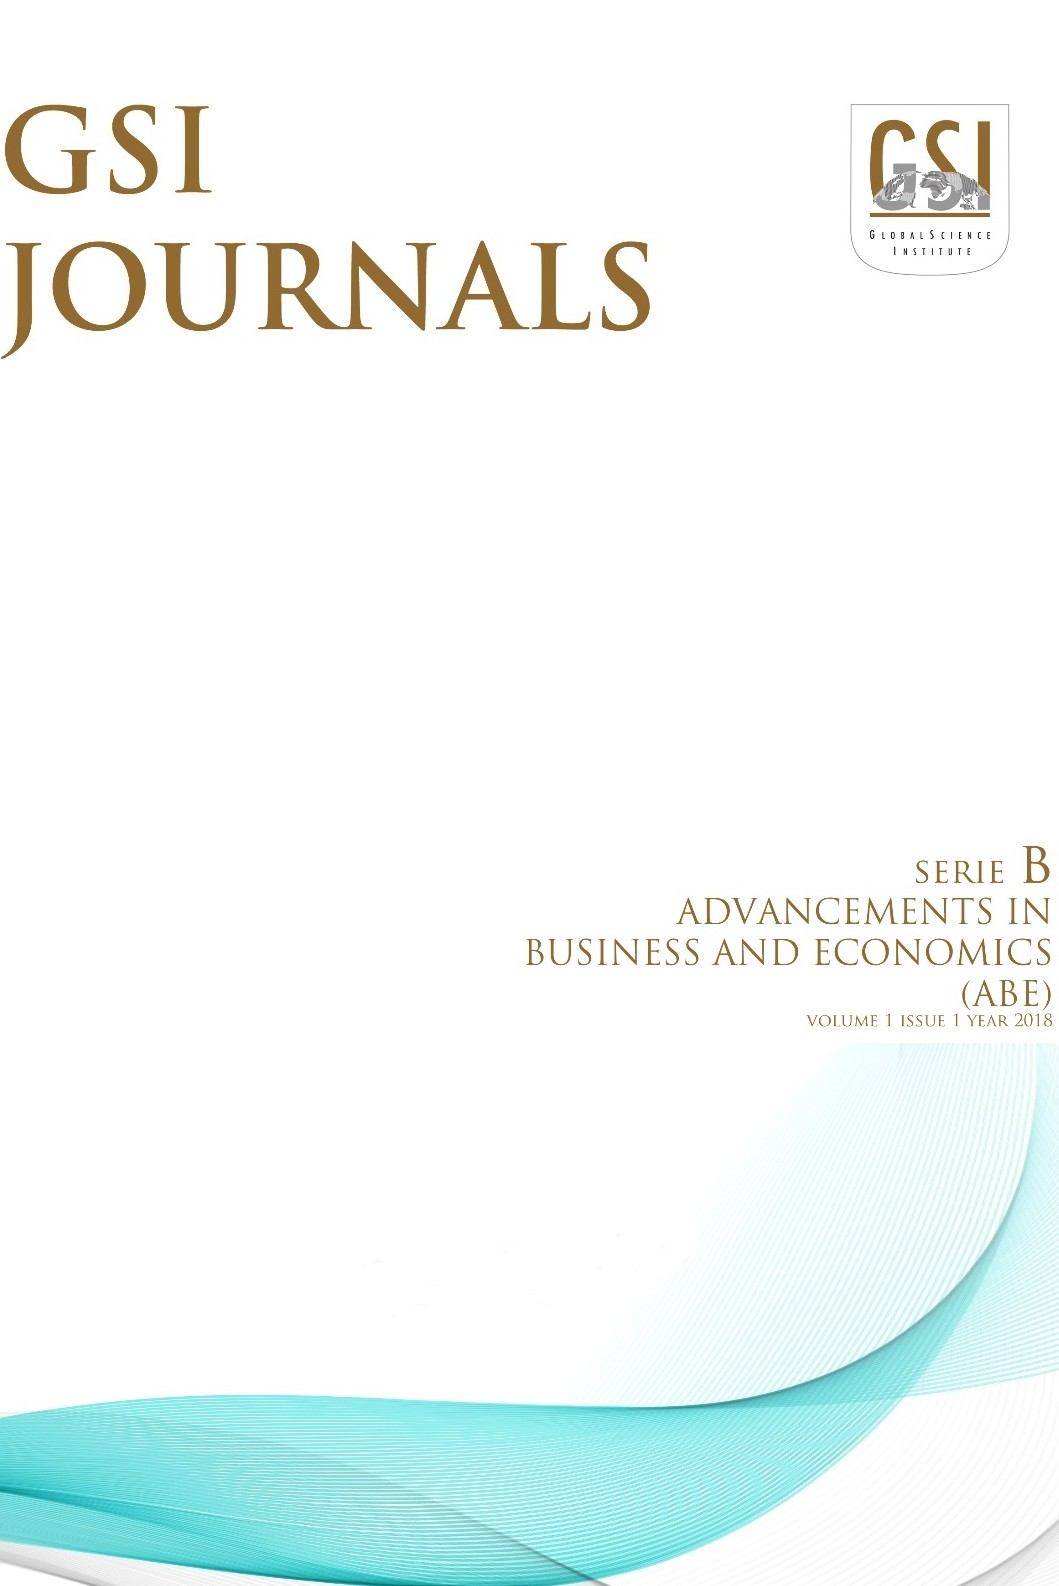 GSI Journals Serie B: Advancements in Business and Economics